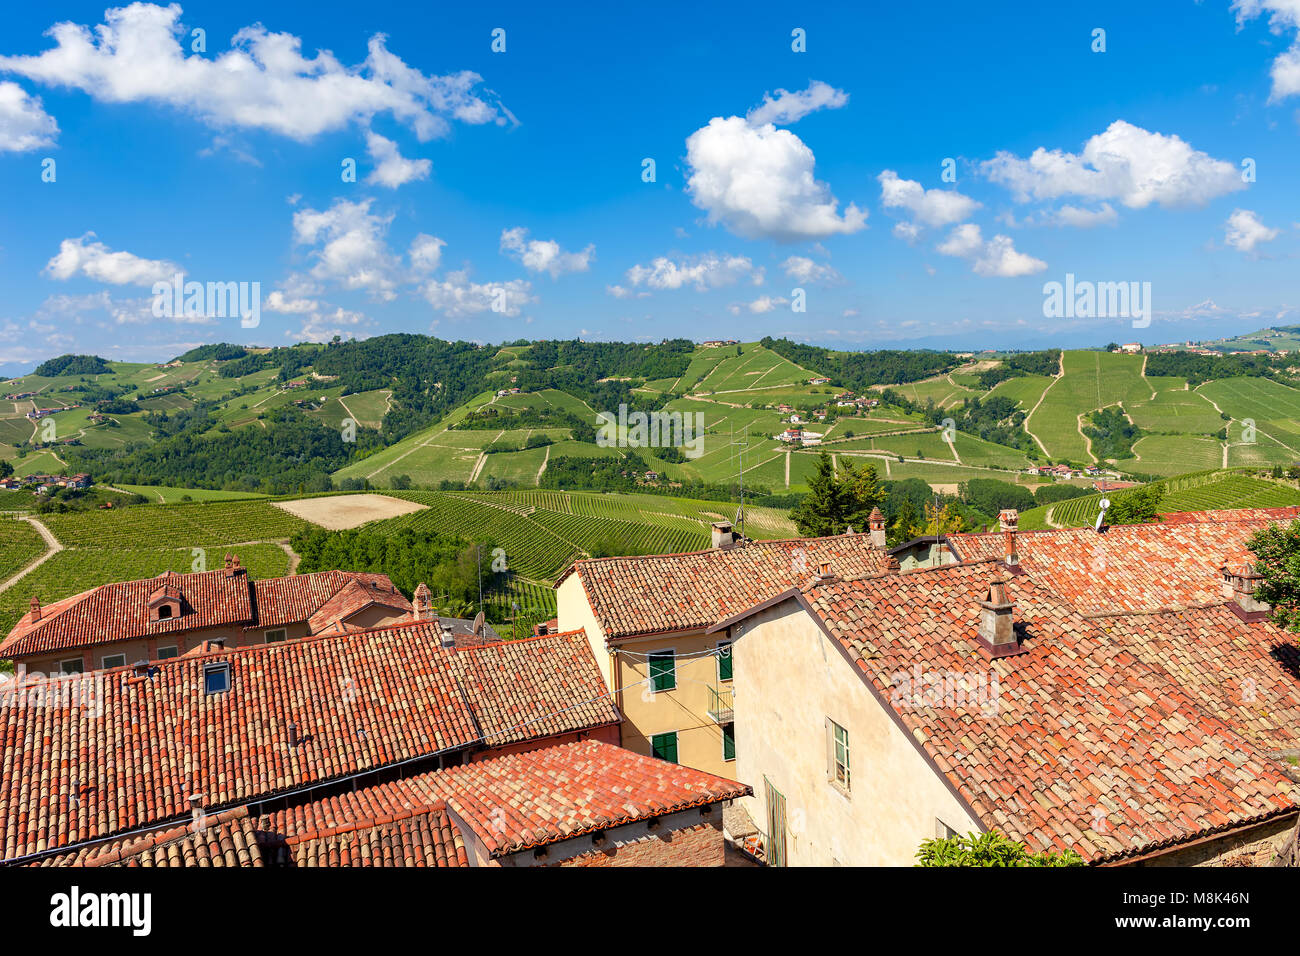 View of rural houses with red roofs overlooking green vineyards on the hills under blue sky with white clouds in - Stock Image